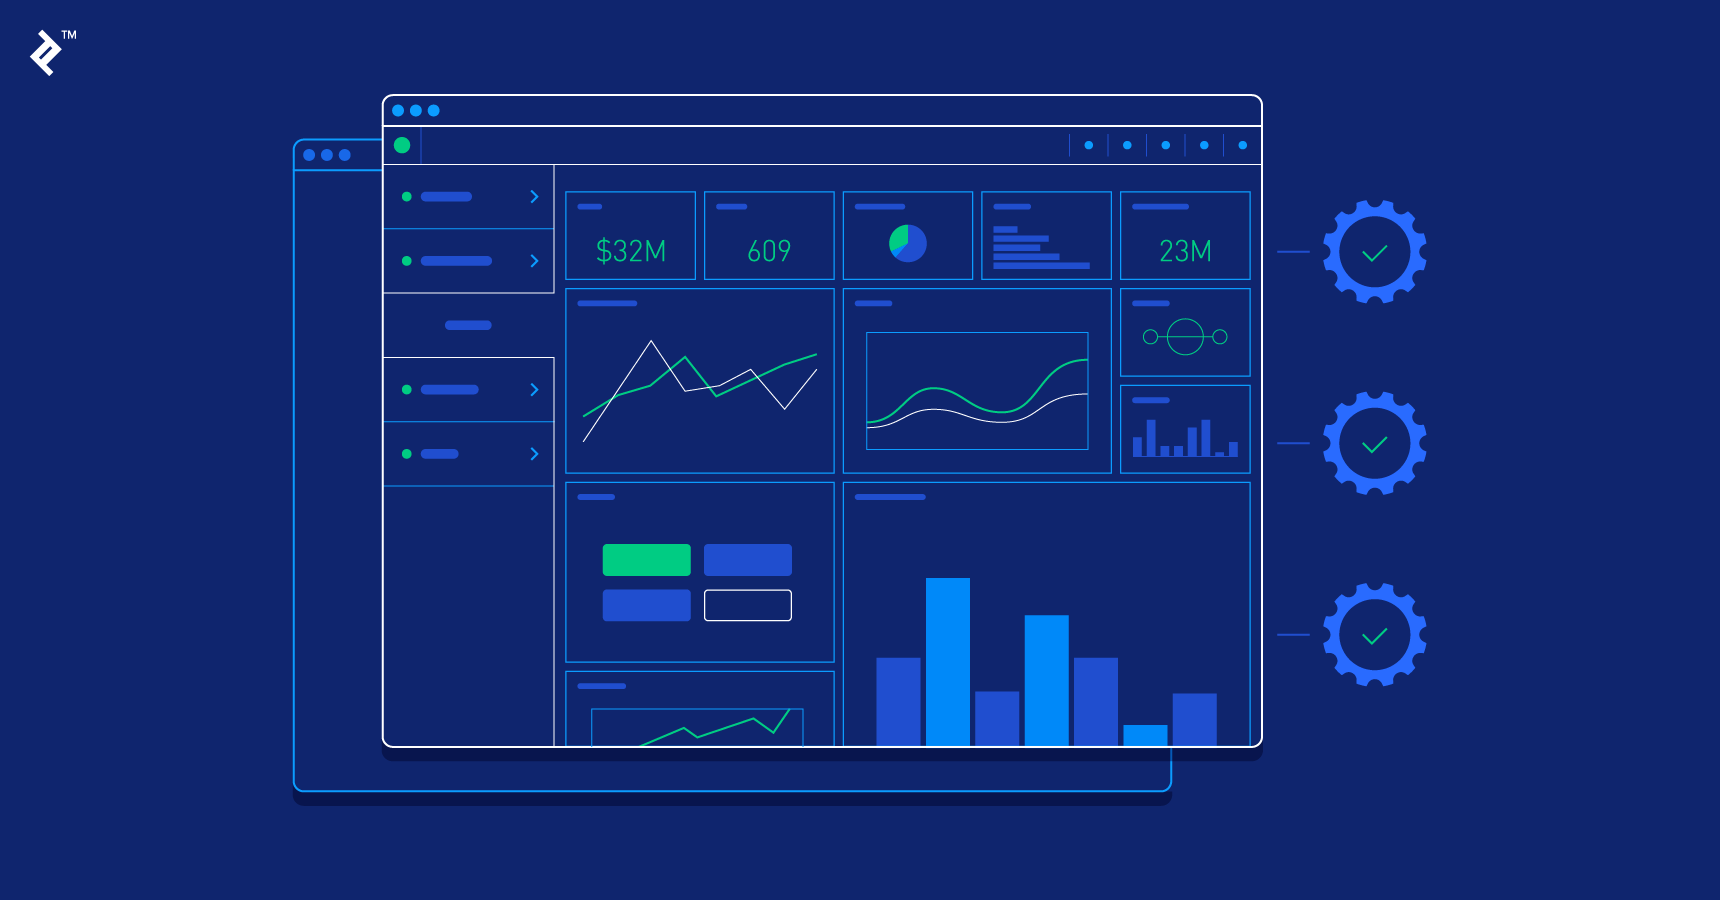 Dashboard Design - Considerations and Best Practices | Toptal